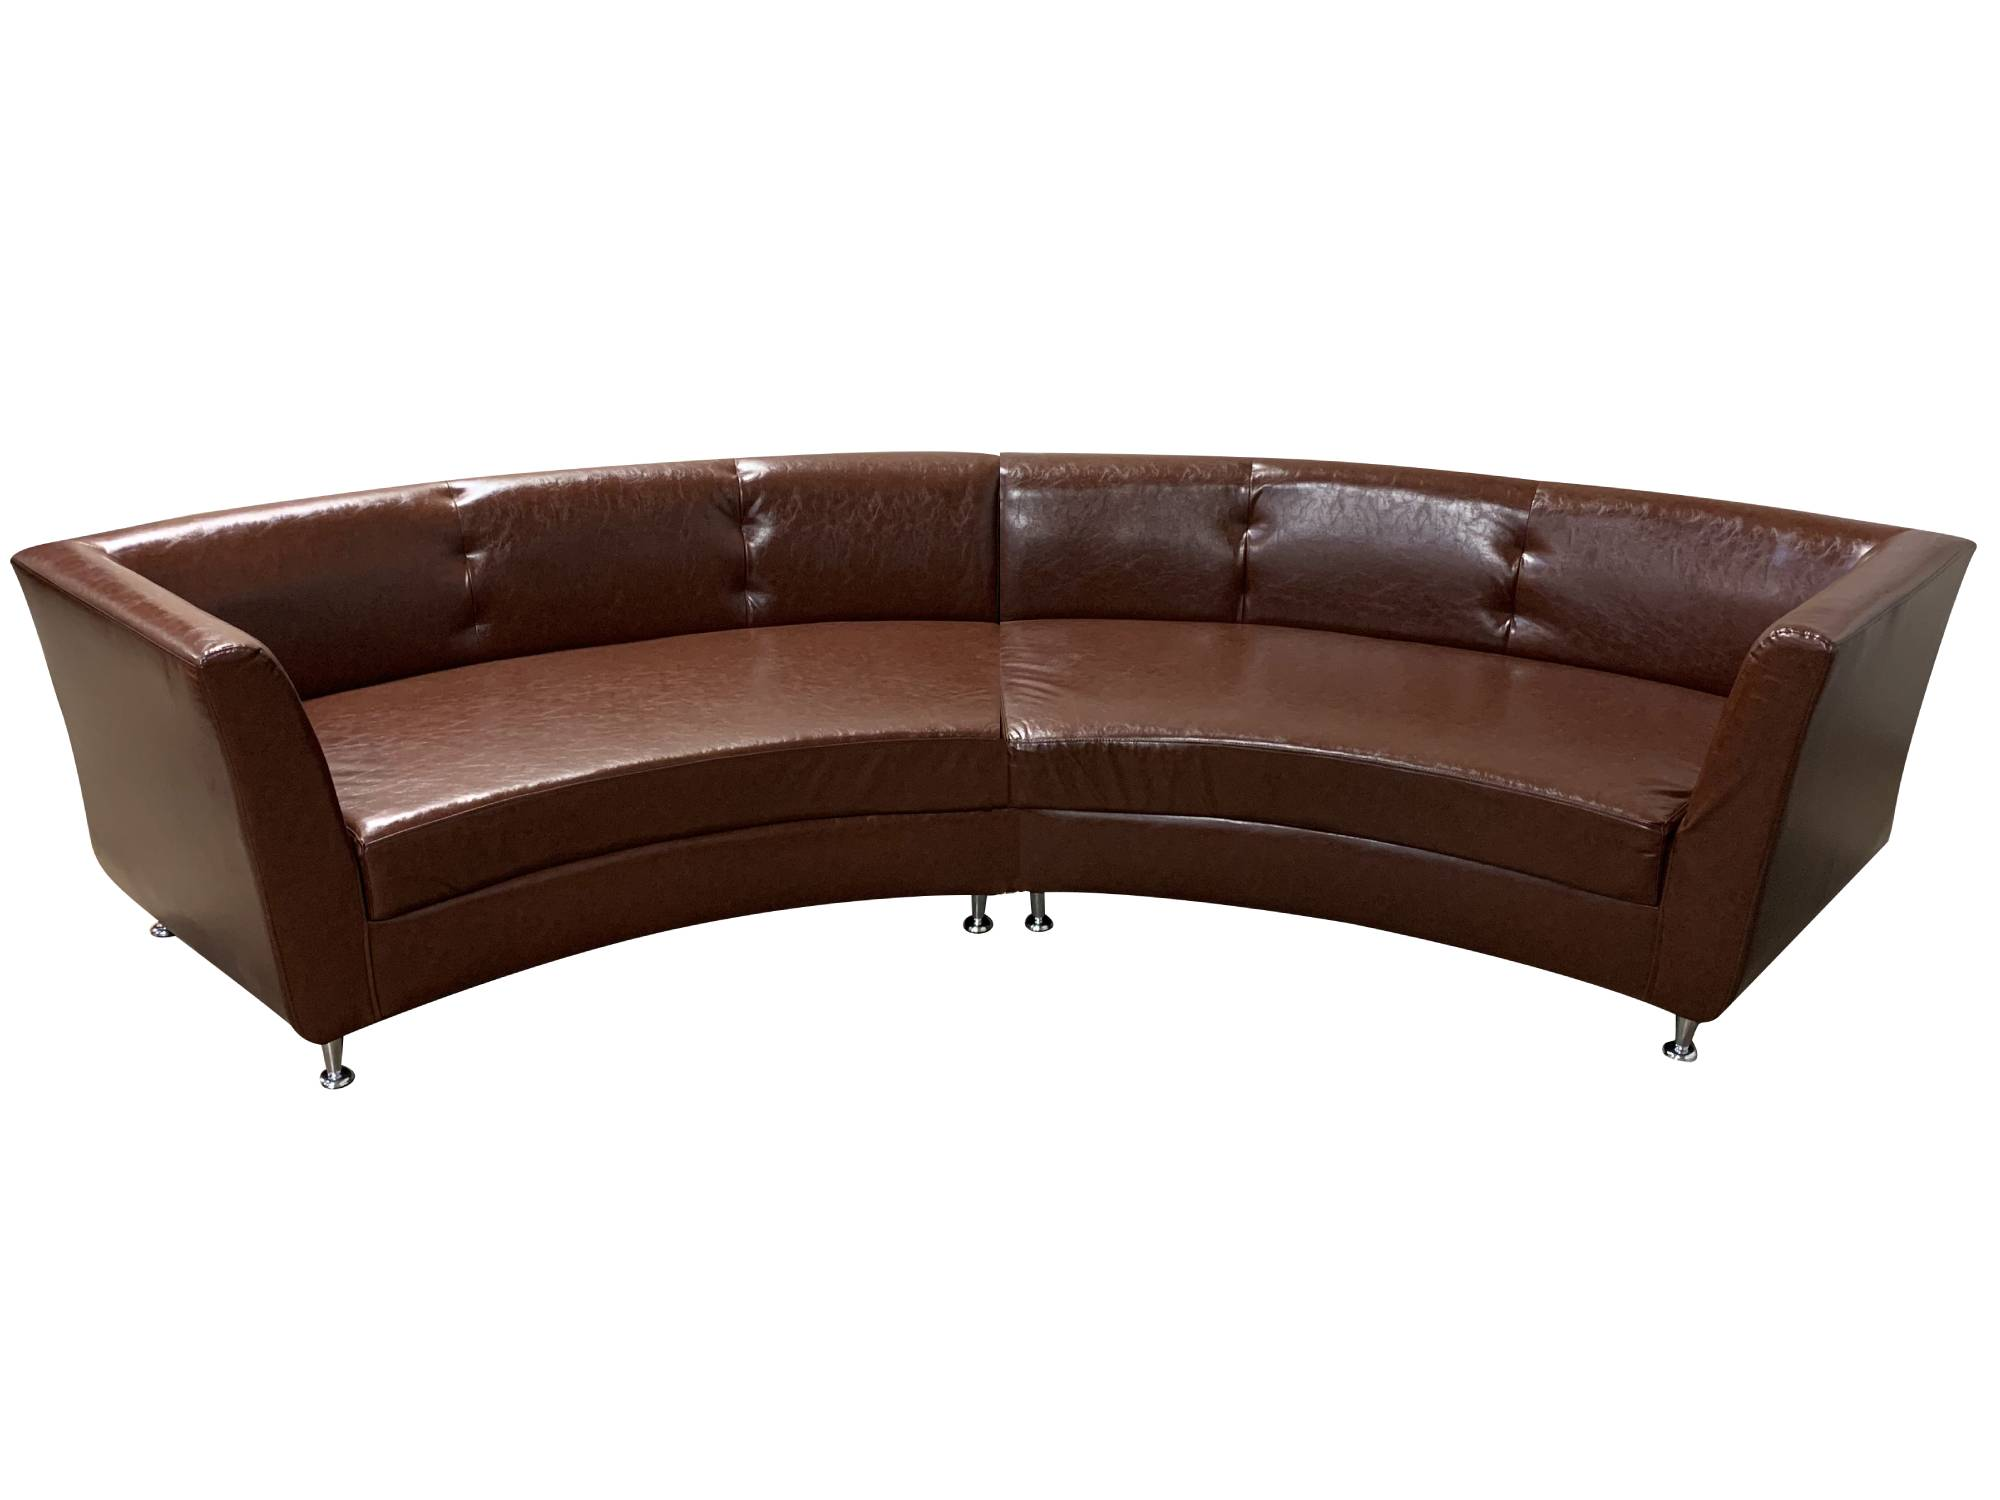 LUXURY 2PC CURVED SOFA - BROWN